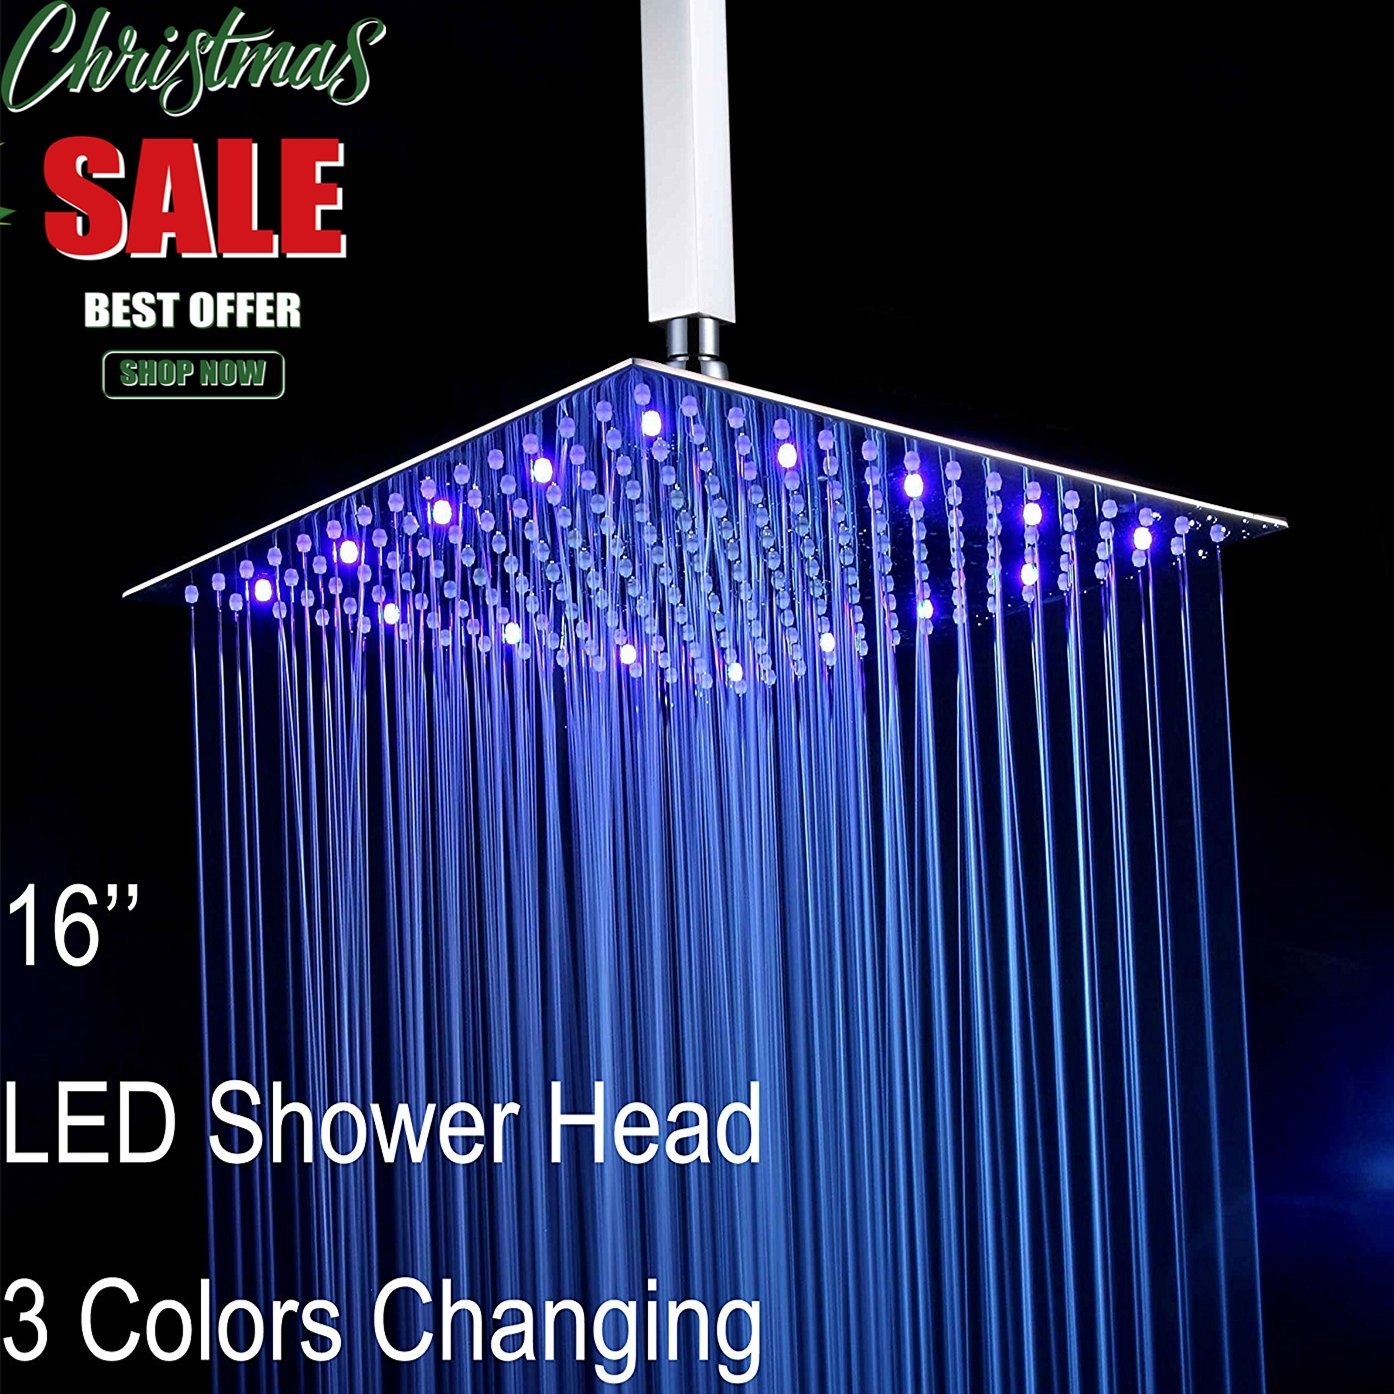 Fyeer 16'' LED Rainfall Shower Head Square, Ultra-thin Luxury Bathroom Showerhead Ceiling Mounted, 3-LAYER Brushed Nickel 304 Stainless Steel, Temperature Sensor 3 Colors Chaning by Fyeer (Image #1)